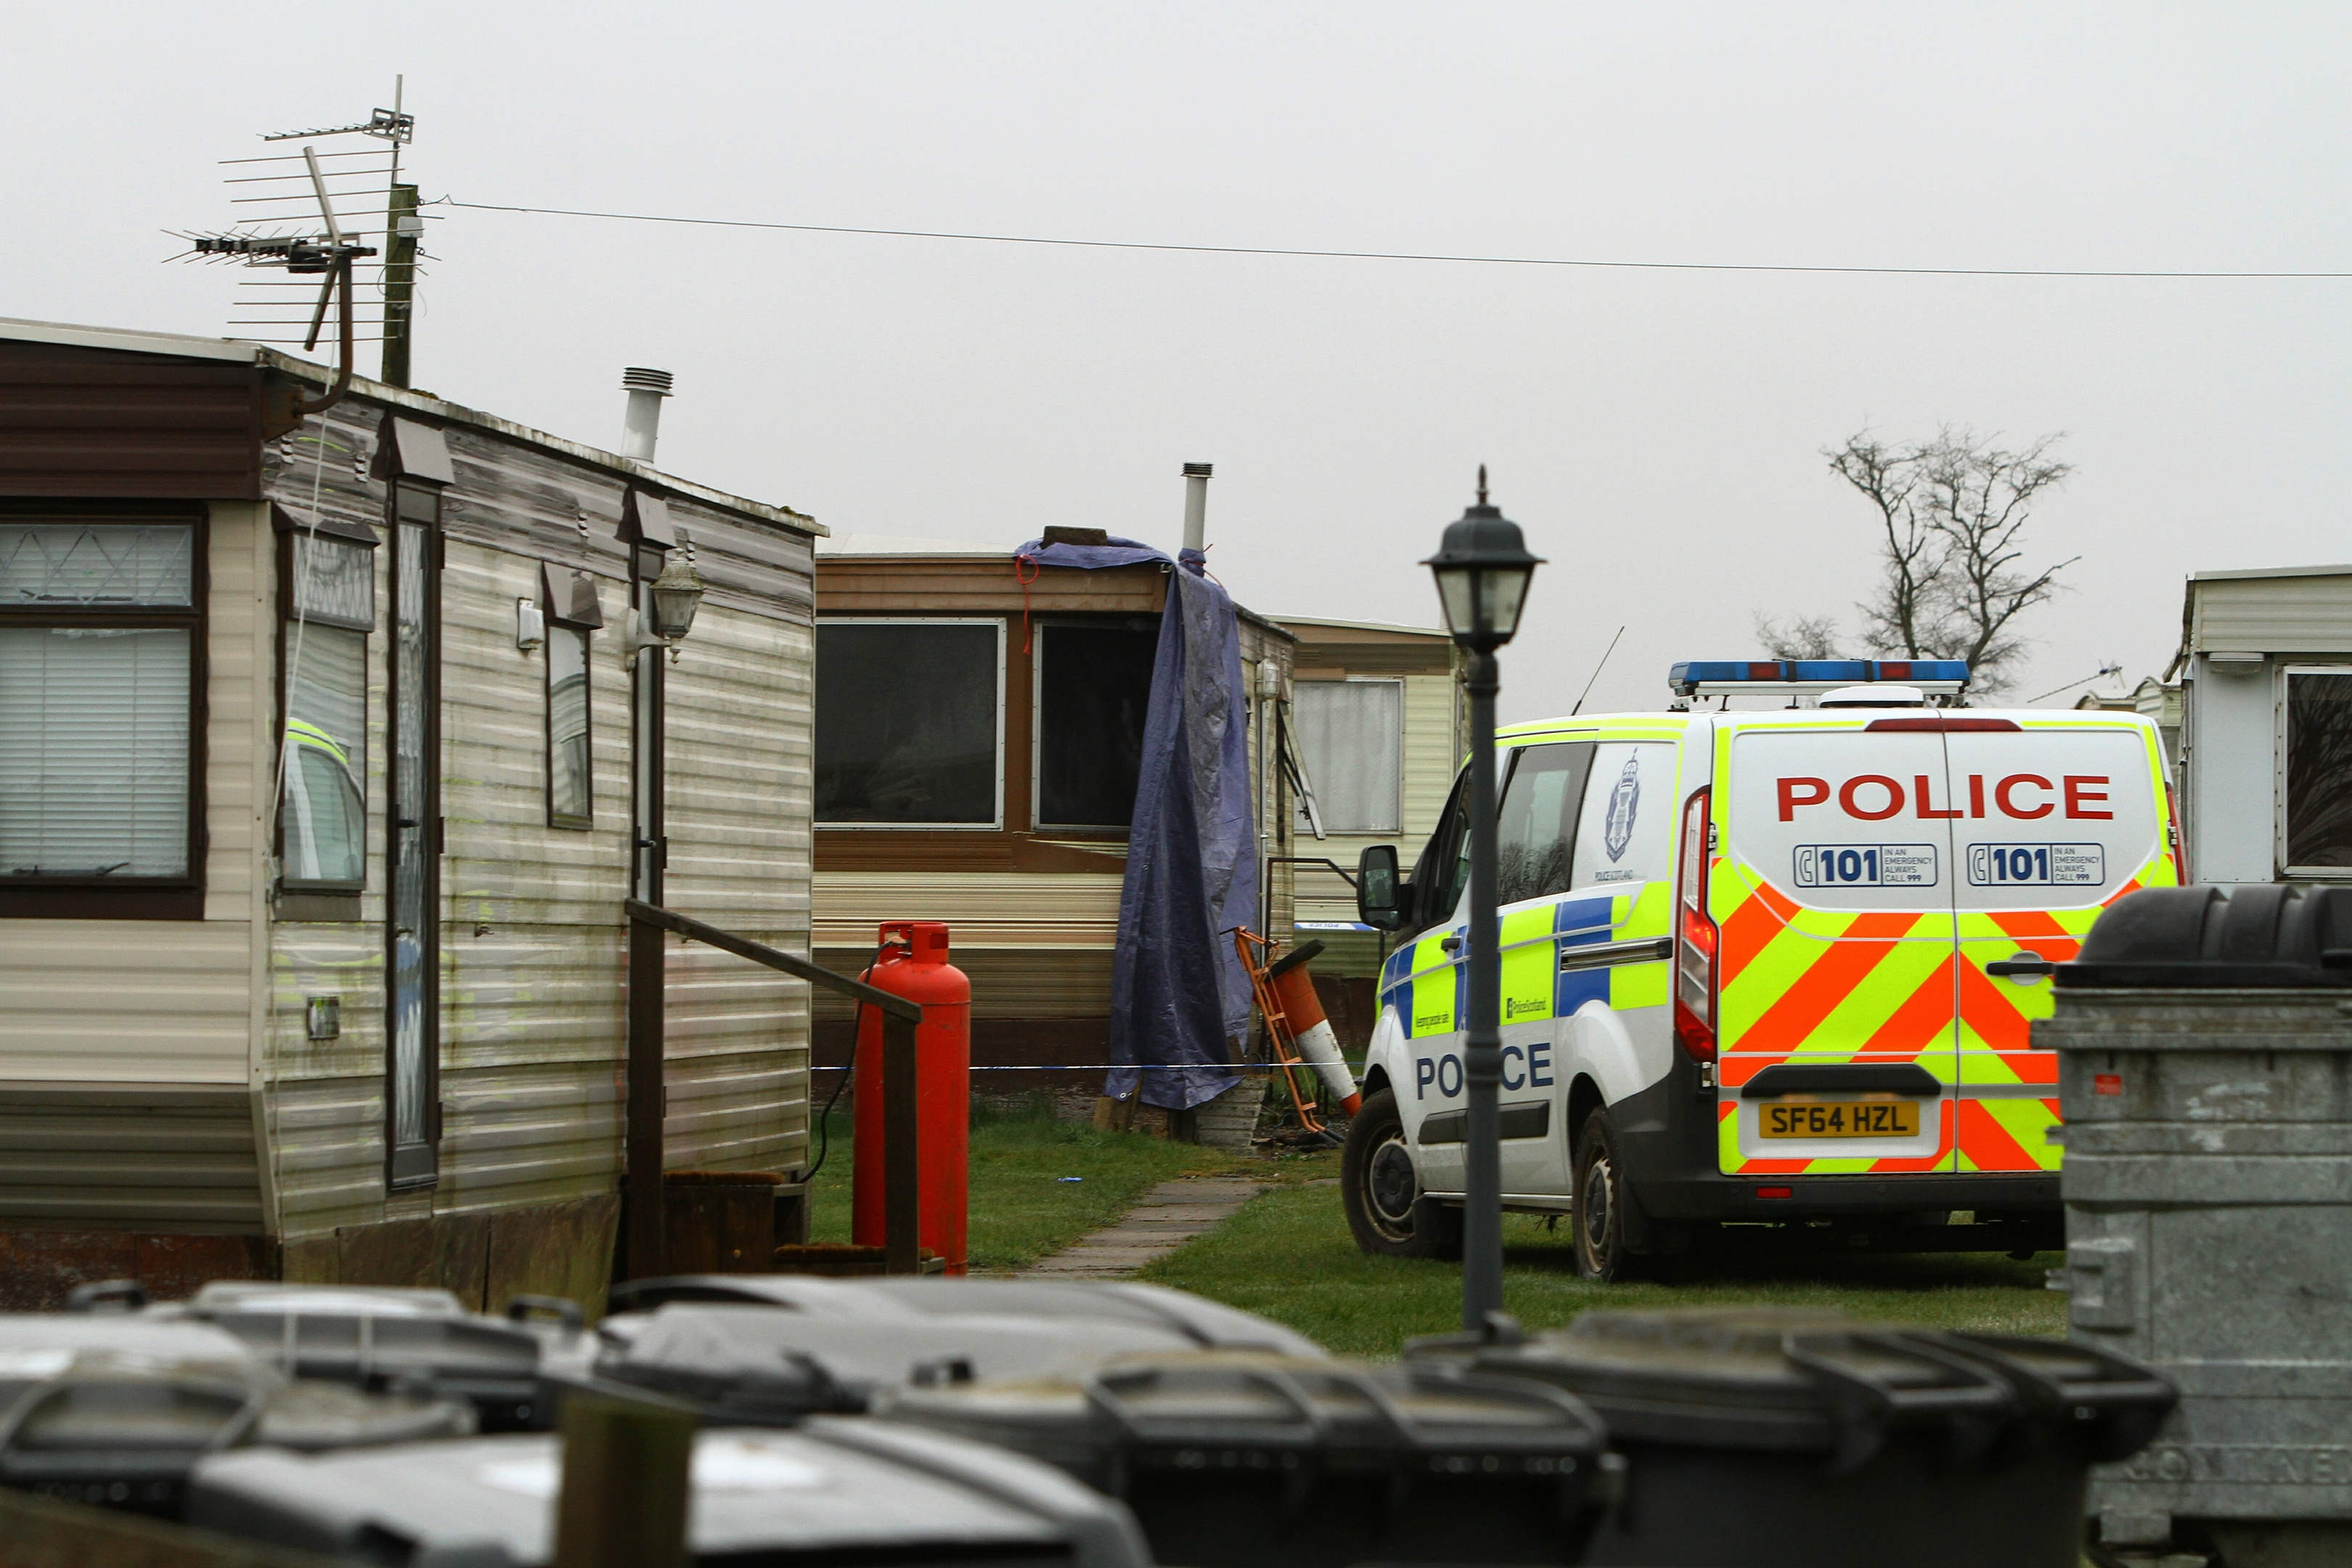 The scene of the fatal fire at Woodlea Caravan Park, outside Arbroath.